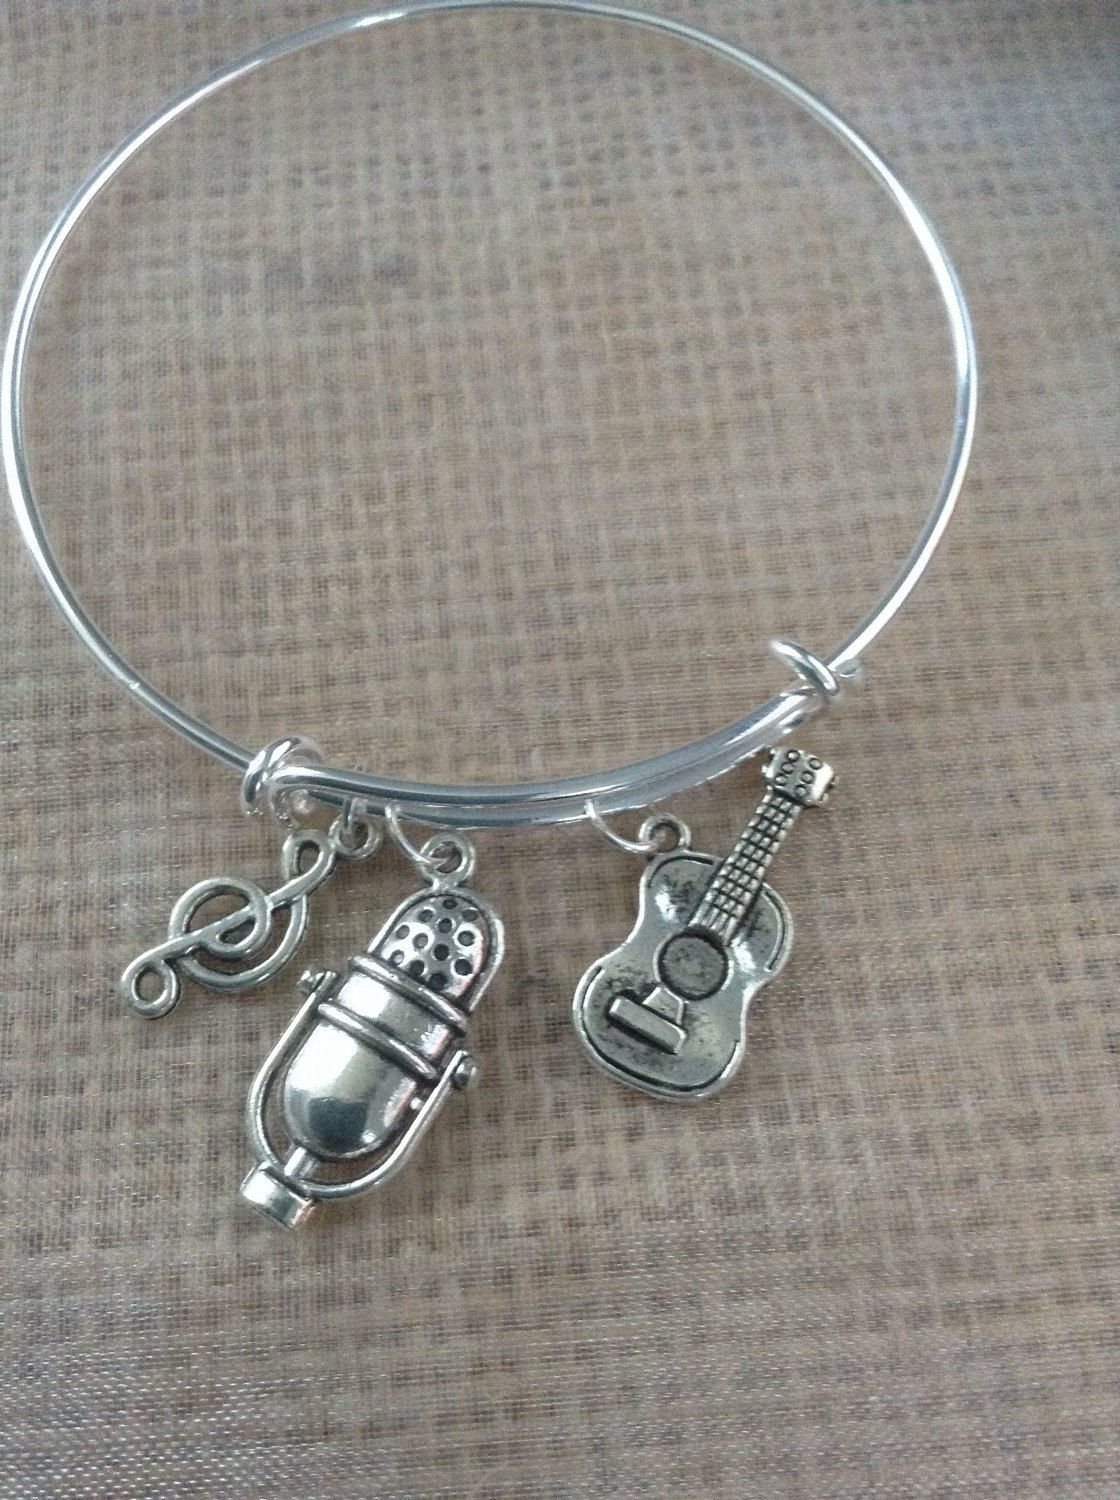 24aa6c358 Music Bracelet with guitar, microphone and music symbol-Alex and Ani  inspired by SugarMeUpTwo on Etsy